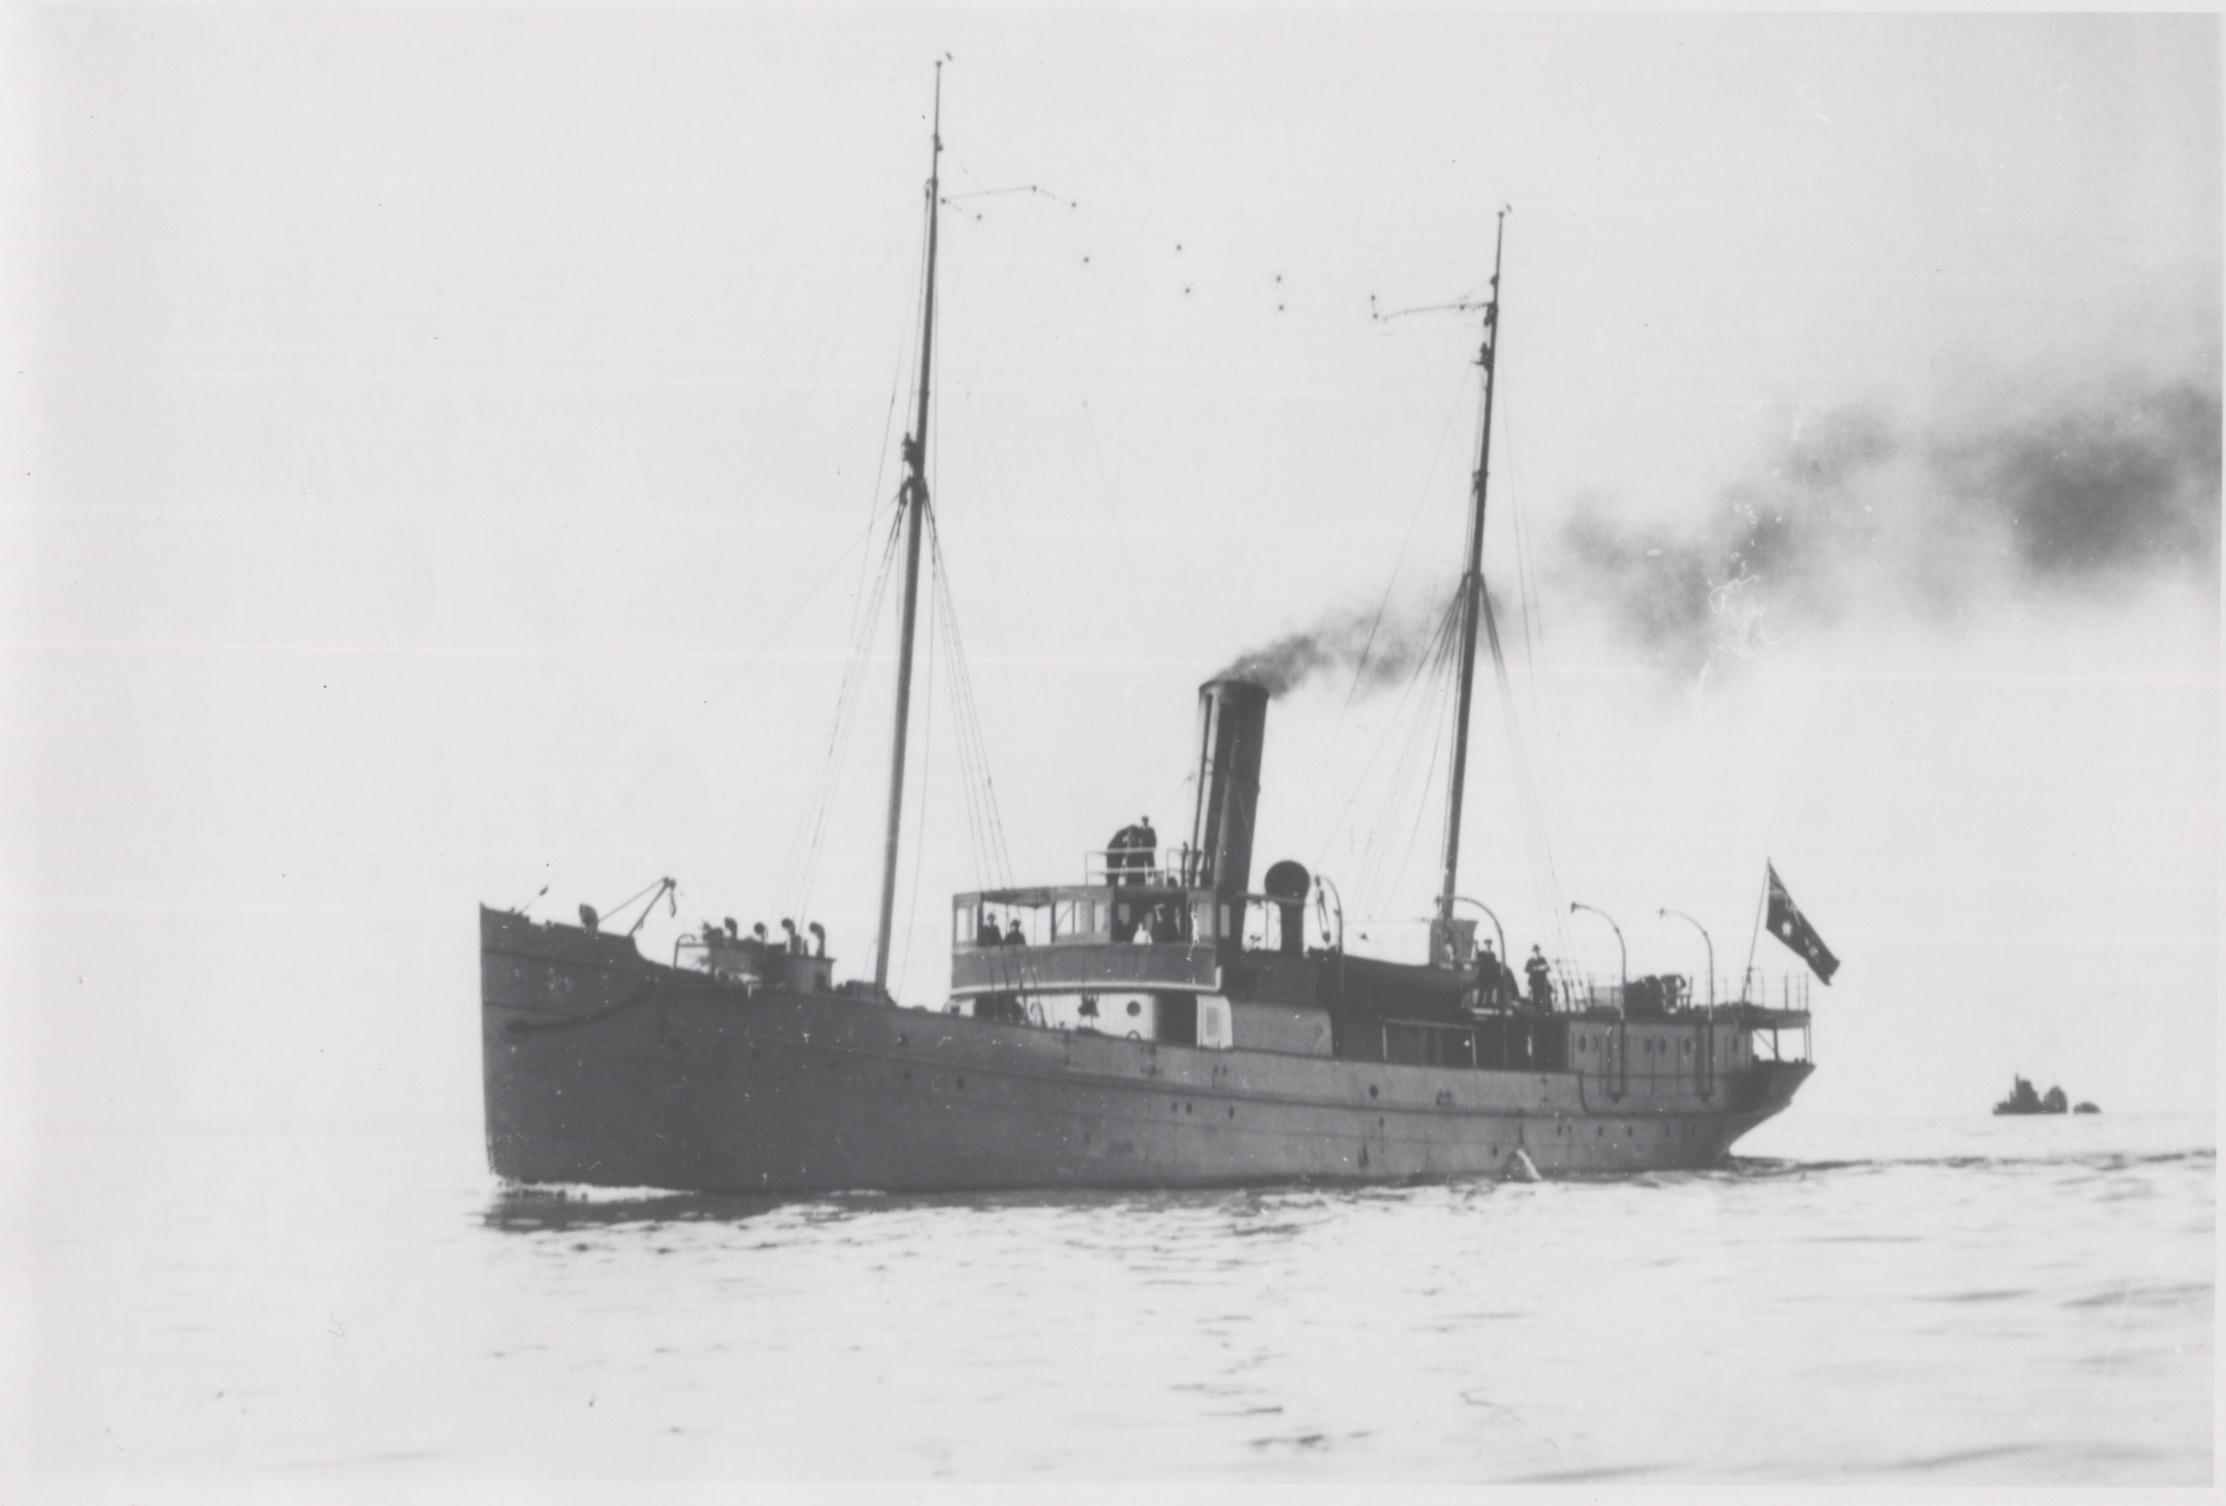 """Lighthouse Tender, """"Lady Loch"""", ex Gunboat.  Built in 1886 by Campbell, Sloss & McCann in Footscray, Melbourne for  the Victorian Dept. Of Public Works.  Iron Steamship of 531 tons.  Built for use as a lighthouse tender and serviced lighthouses around the"""